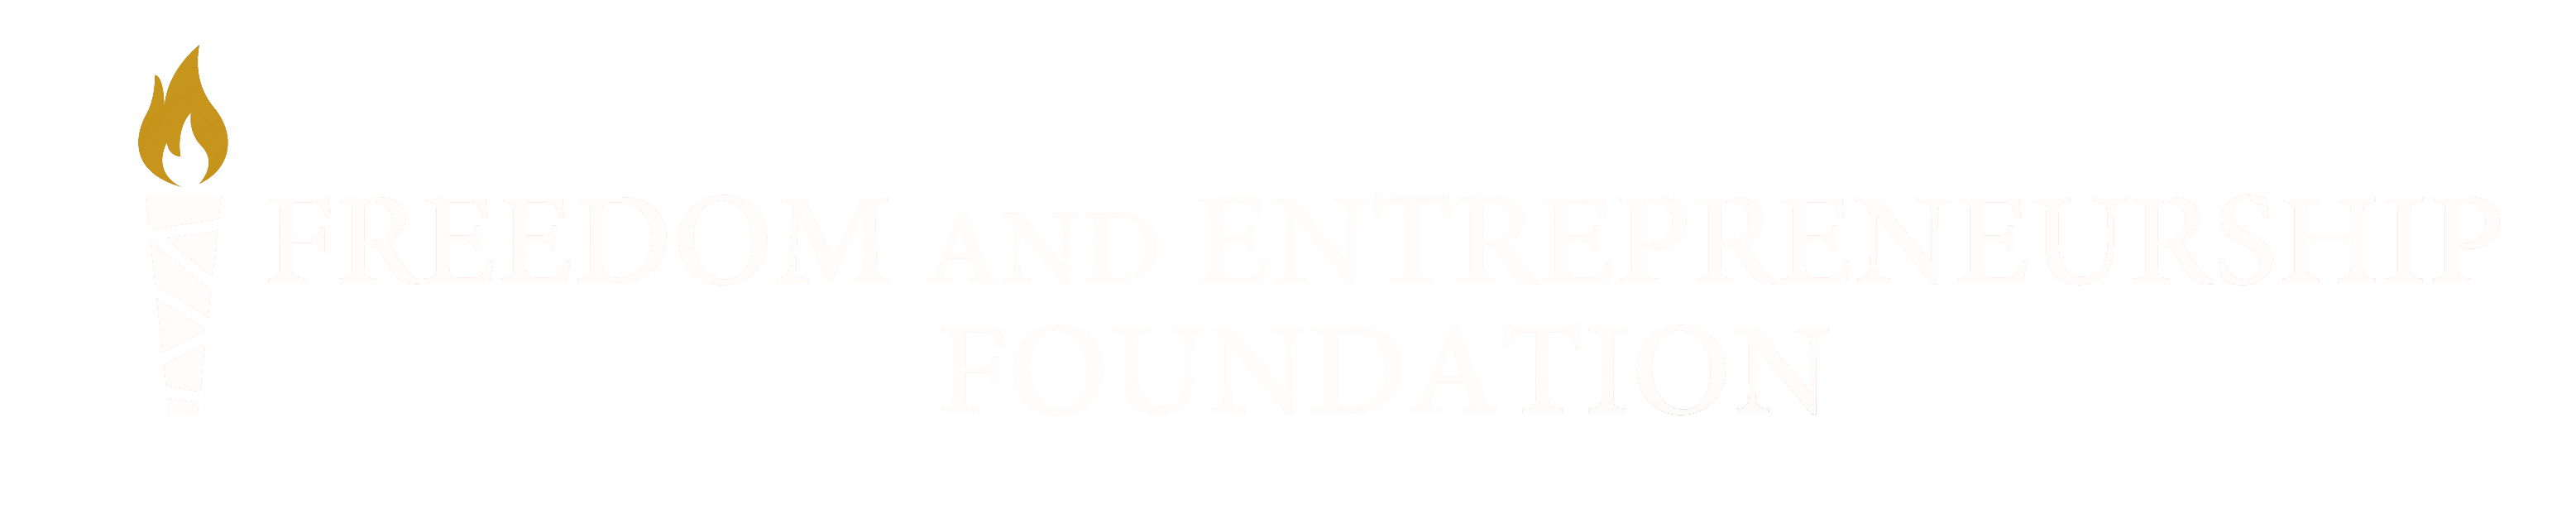 Freedom and Entrepreneurship Foundation